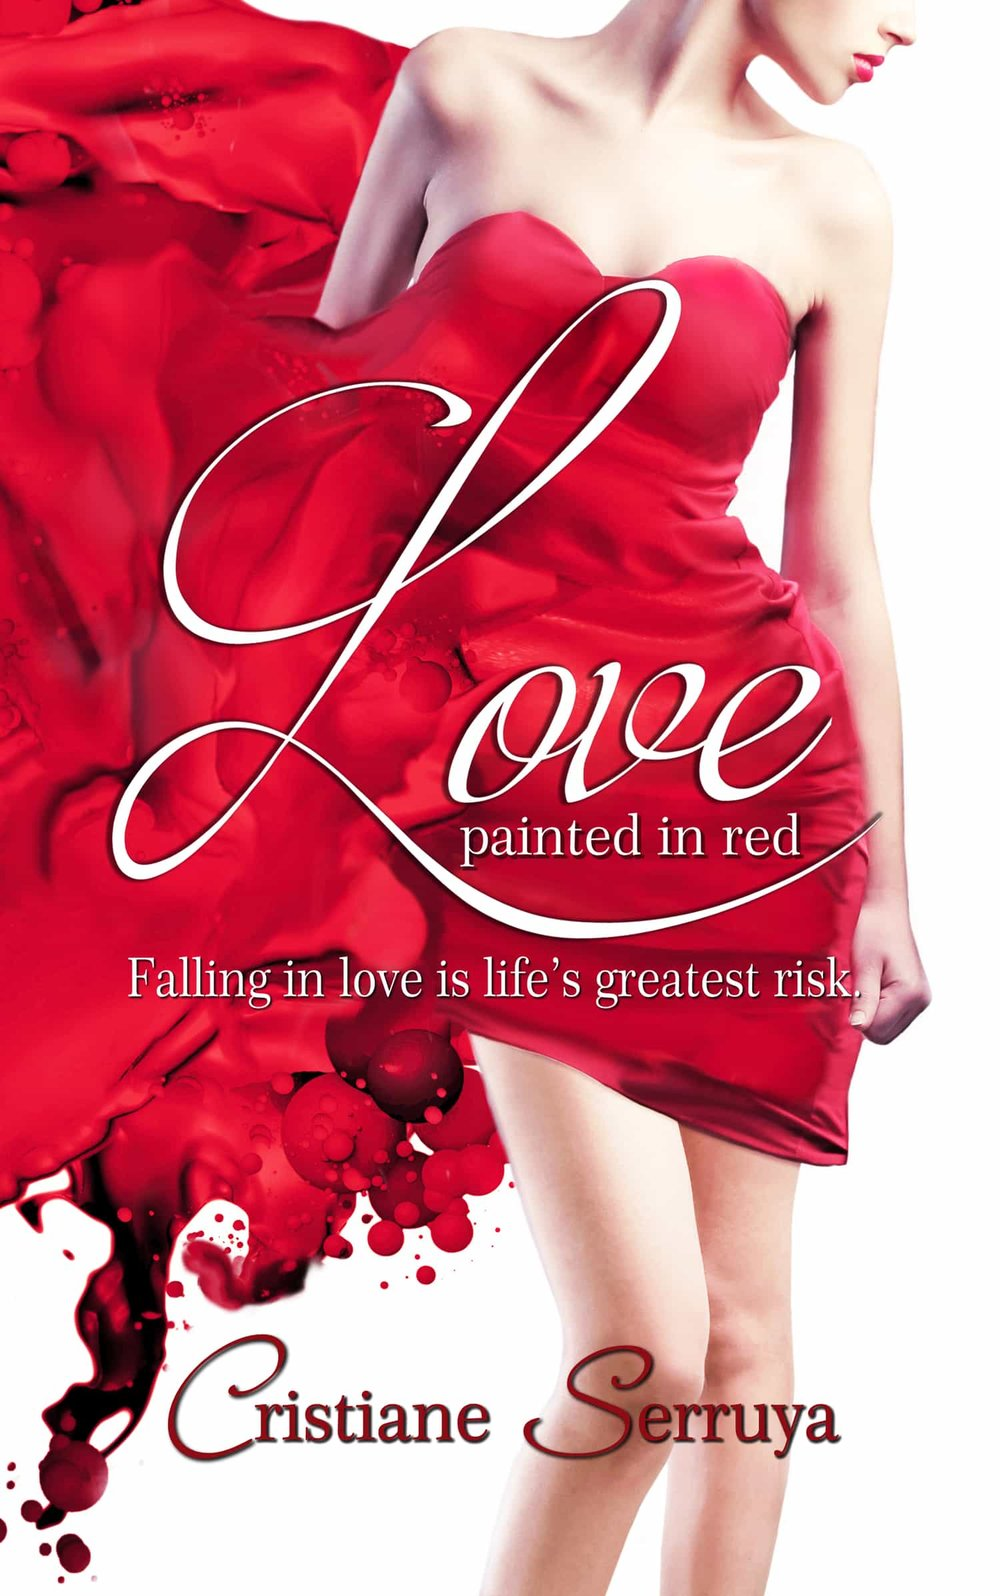 Love Painted in Red - Tavish MacCraig, thirty-three-year-old Highlander, forsook his medical and military career, after being a POW for 6 months in Afghanistan, to run his family's internationally renowned art gallery in London, The Blue Dot. Despite being surrounded by wealth and beauty, Tavish's days are bleak, his nights, living nightmares, and his heart, an empty shell. But when he meets Irish painter Laetitia Galen, a powerful and sizzling attraction ignites between them.Laetitia, who fled hell on earth when she was sixteen, now works as a well-paid housekeeper in a forsaken country manor in Warwickshire and sells her paintings in an obscure gallery. To preserve her new life and recently found peace, she resists Tavish and The Blue Dot's fantastic offer of an exclusive contract.Laetitia becomes Tavish's obsession; Tavish, Laetitia's unattainable dream.Meanwhile, a man with a burning grudge plots his long-awaited revenge, which could destroy them all over again.